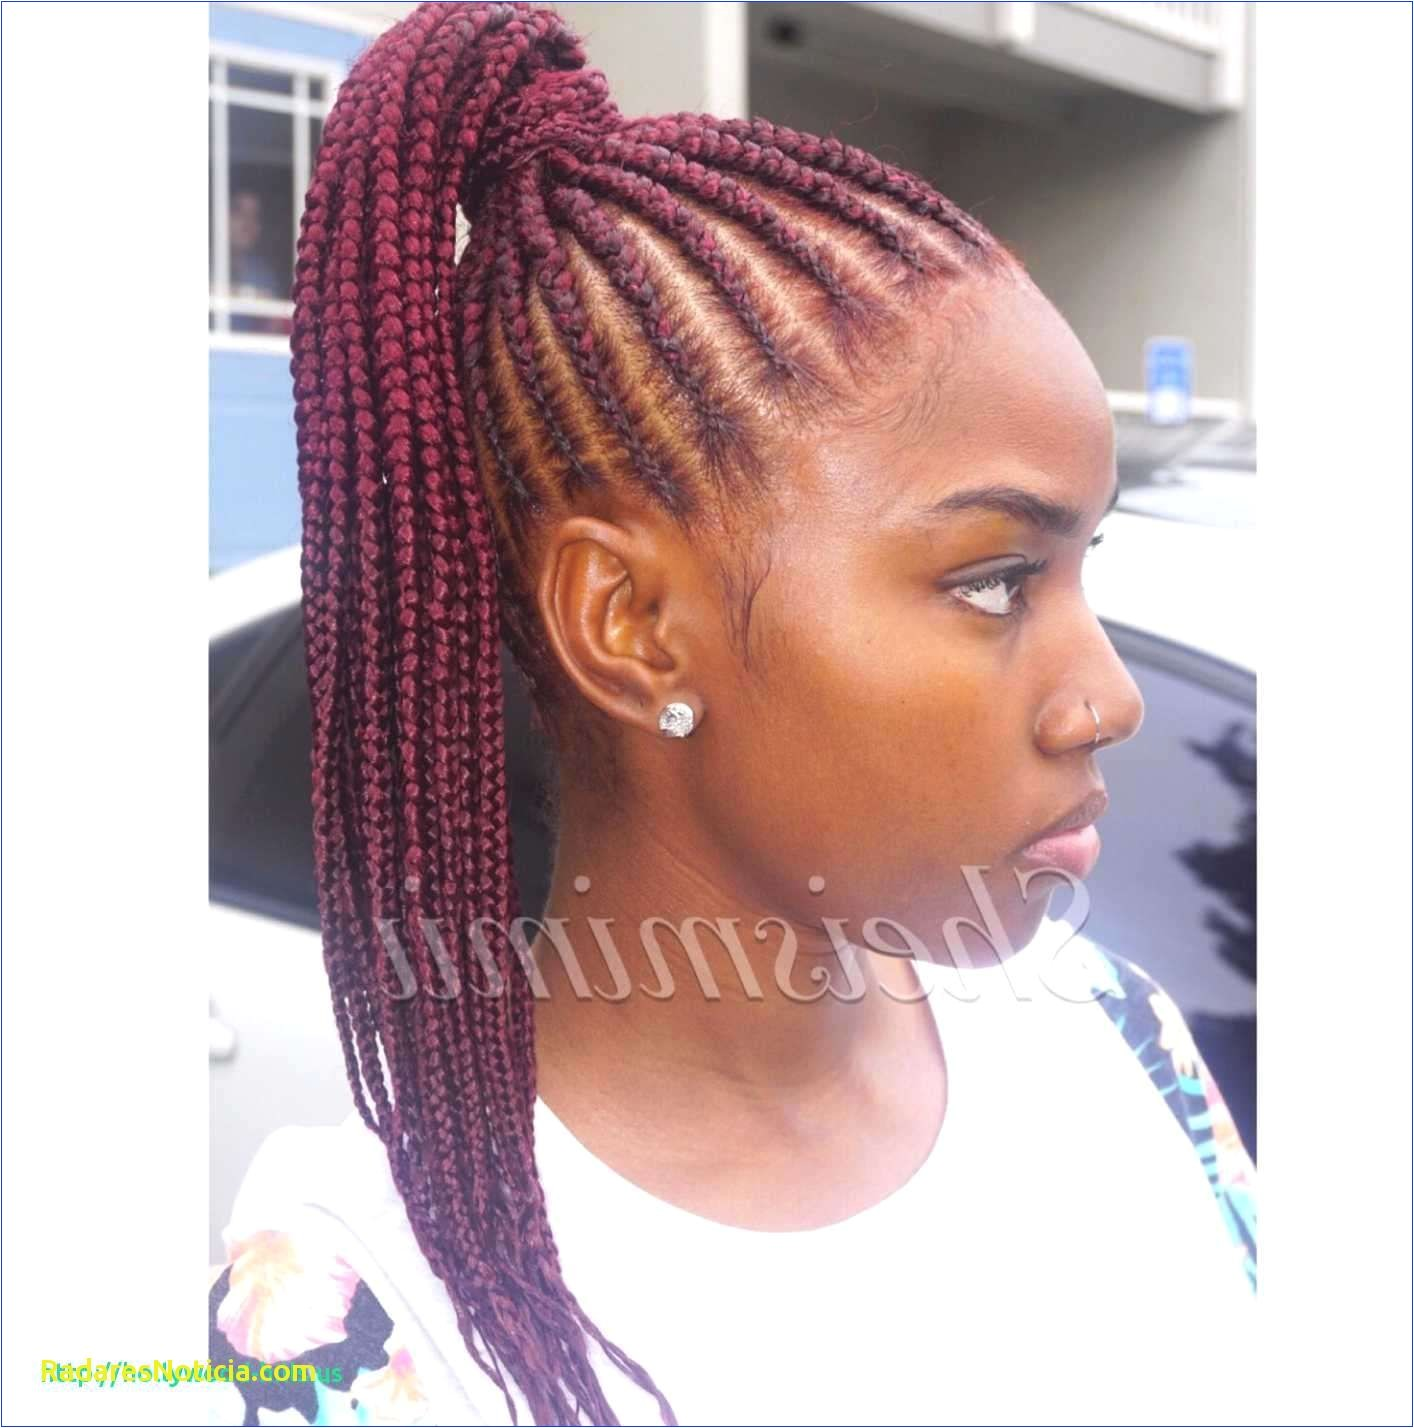 Hairstyles with Braids Best Big Braids Hairstyles Fresh Micro Hairstyles 0d Regrowhairproducts Black Hairstyles Braid Extensions from white girl